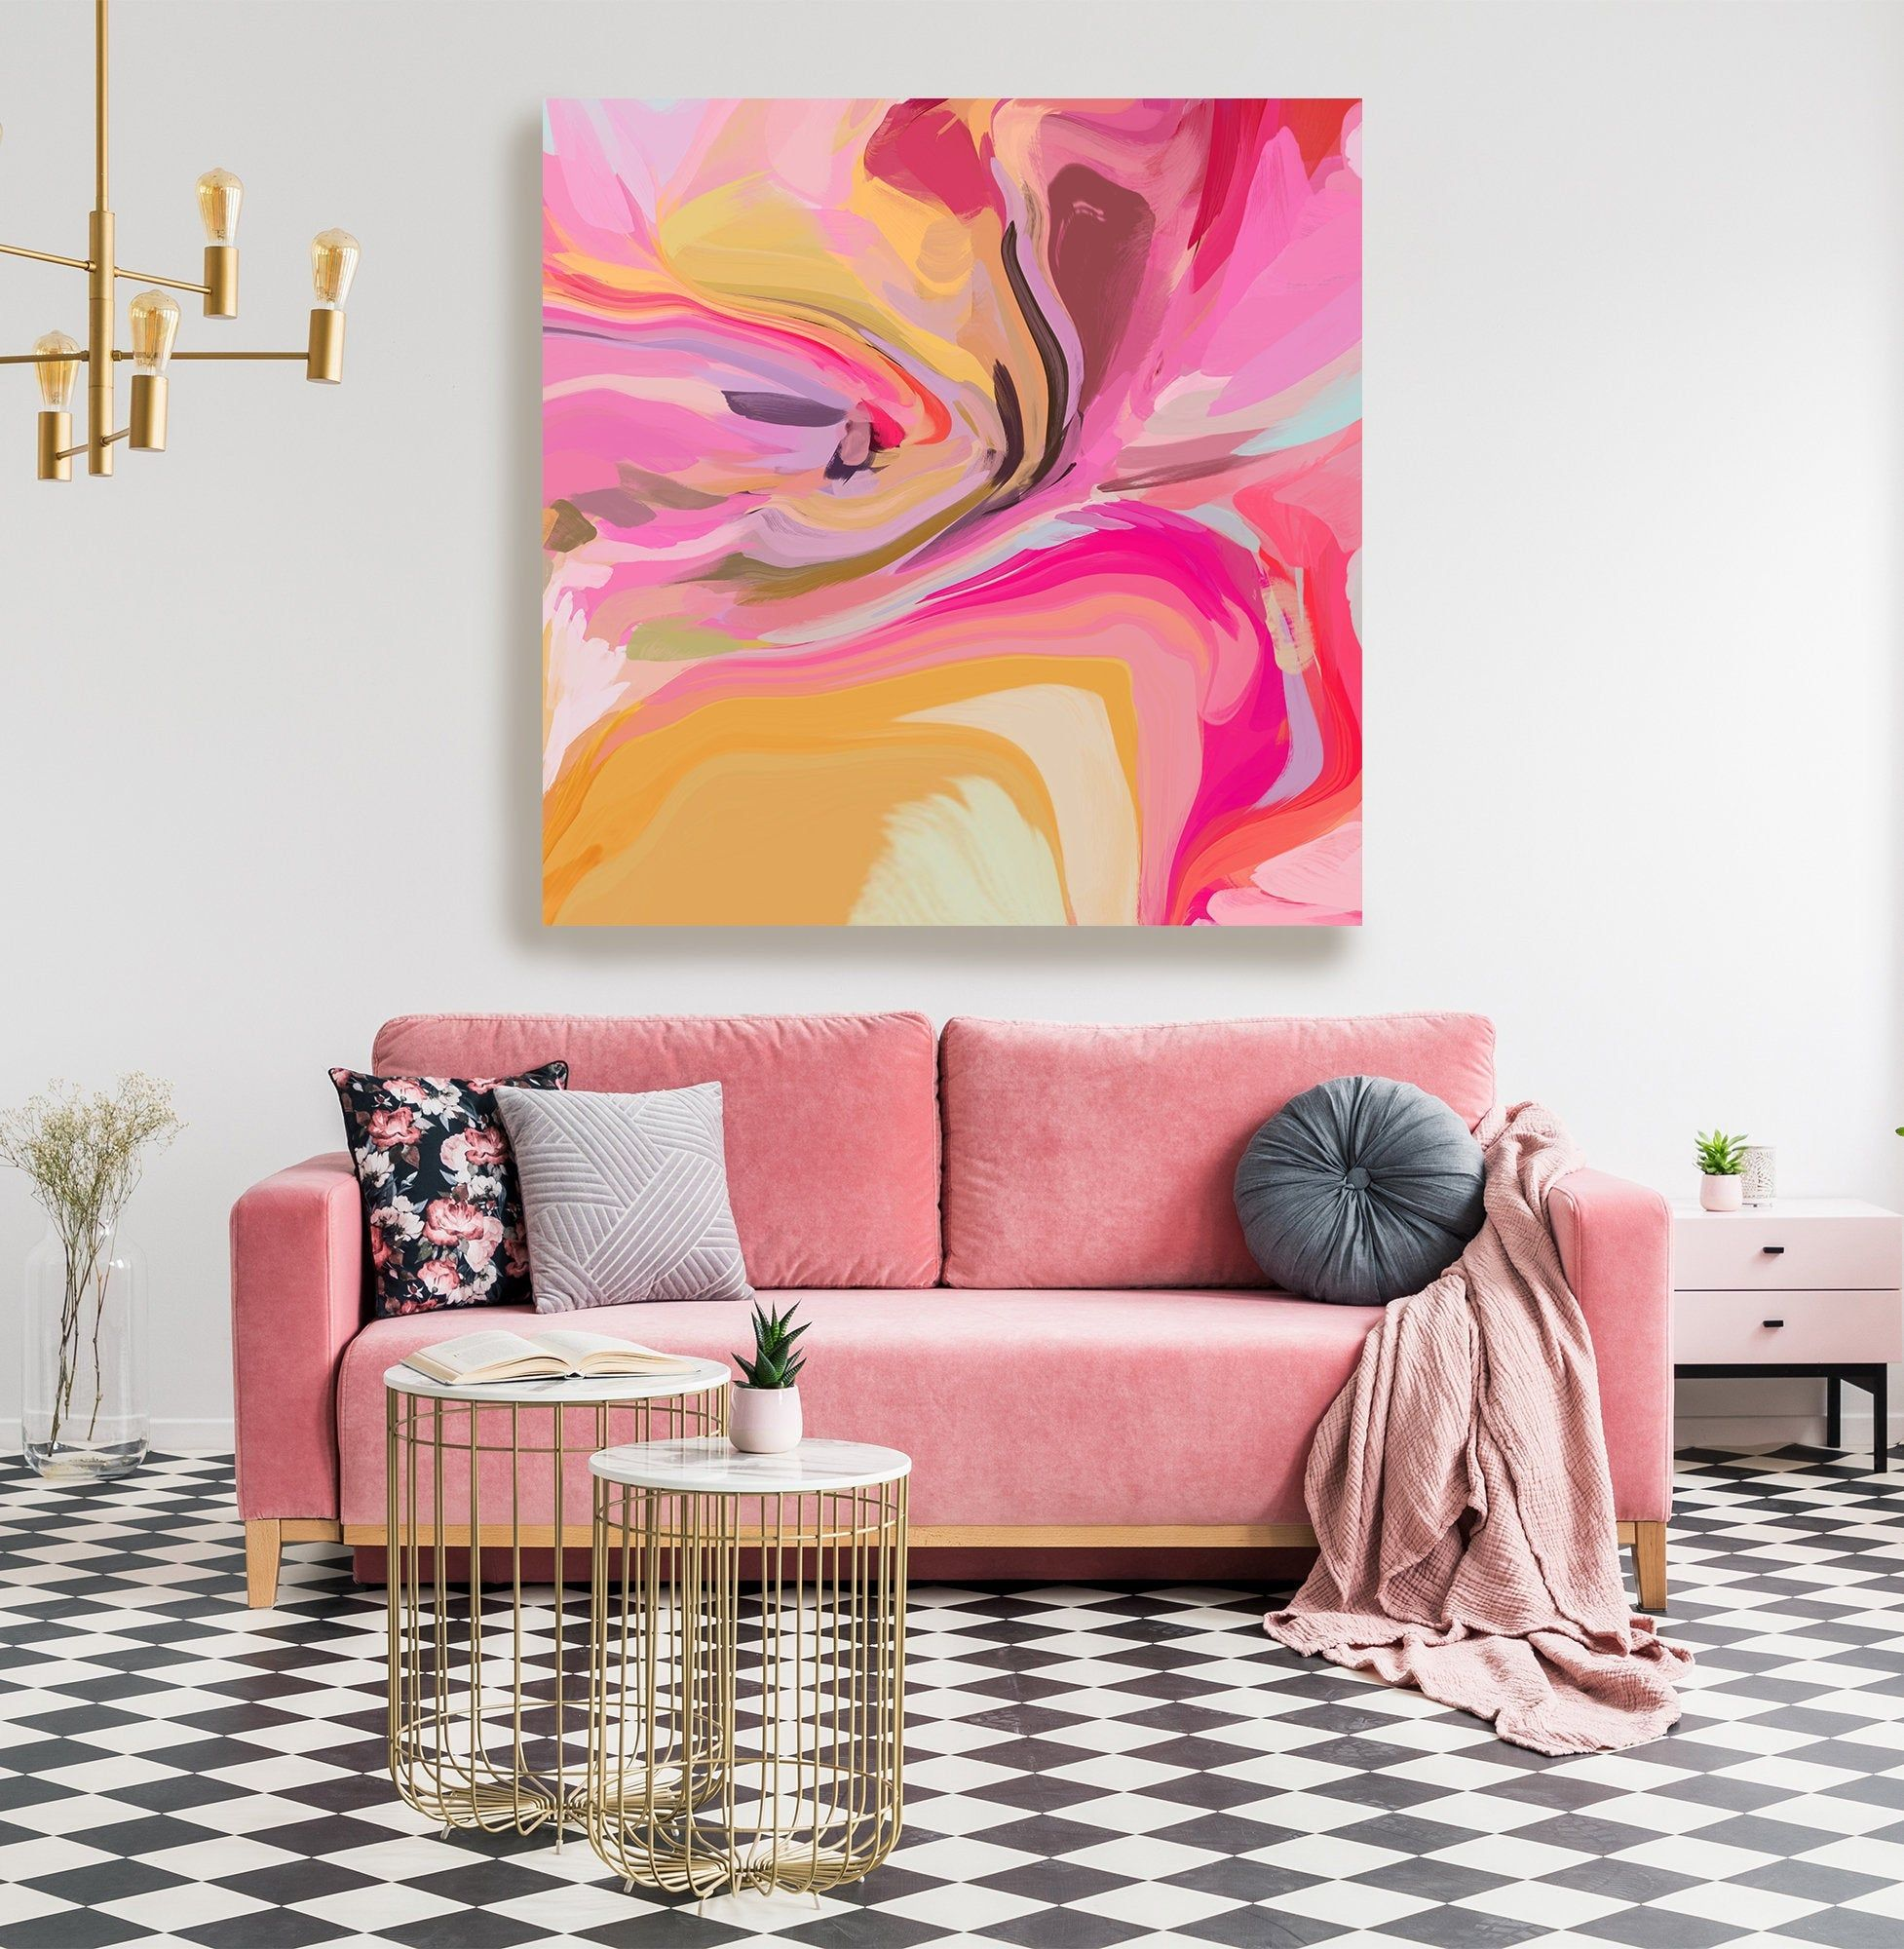 Pink Abstract Fine Art Canvas Abstract Art Contemporary Art Modern Hot Pink Painting Expressionism Canvas Print In Light Of Fate Modern Abstract Wall Art Canvas Art Pink Abstract